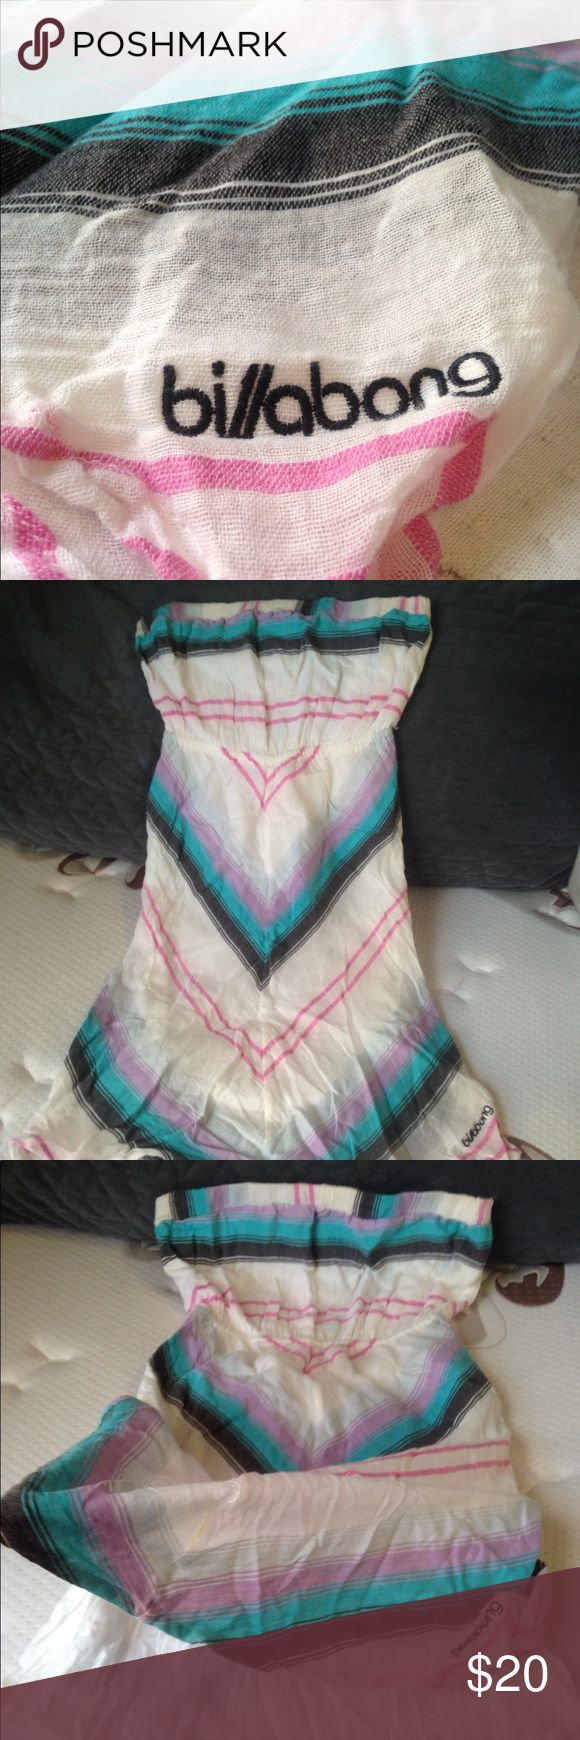 Billabong linen strapless dress Beautiful vibrant colors , soft linen fabric , lined (see photo) , strapless dress. Mint condition , the skirt comes to sort of a point in the front and back , like a V . Stretchy back part keeps dress perfectly in place all day and night , offers welcome ✨ Billabong Dresses Strapless